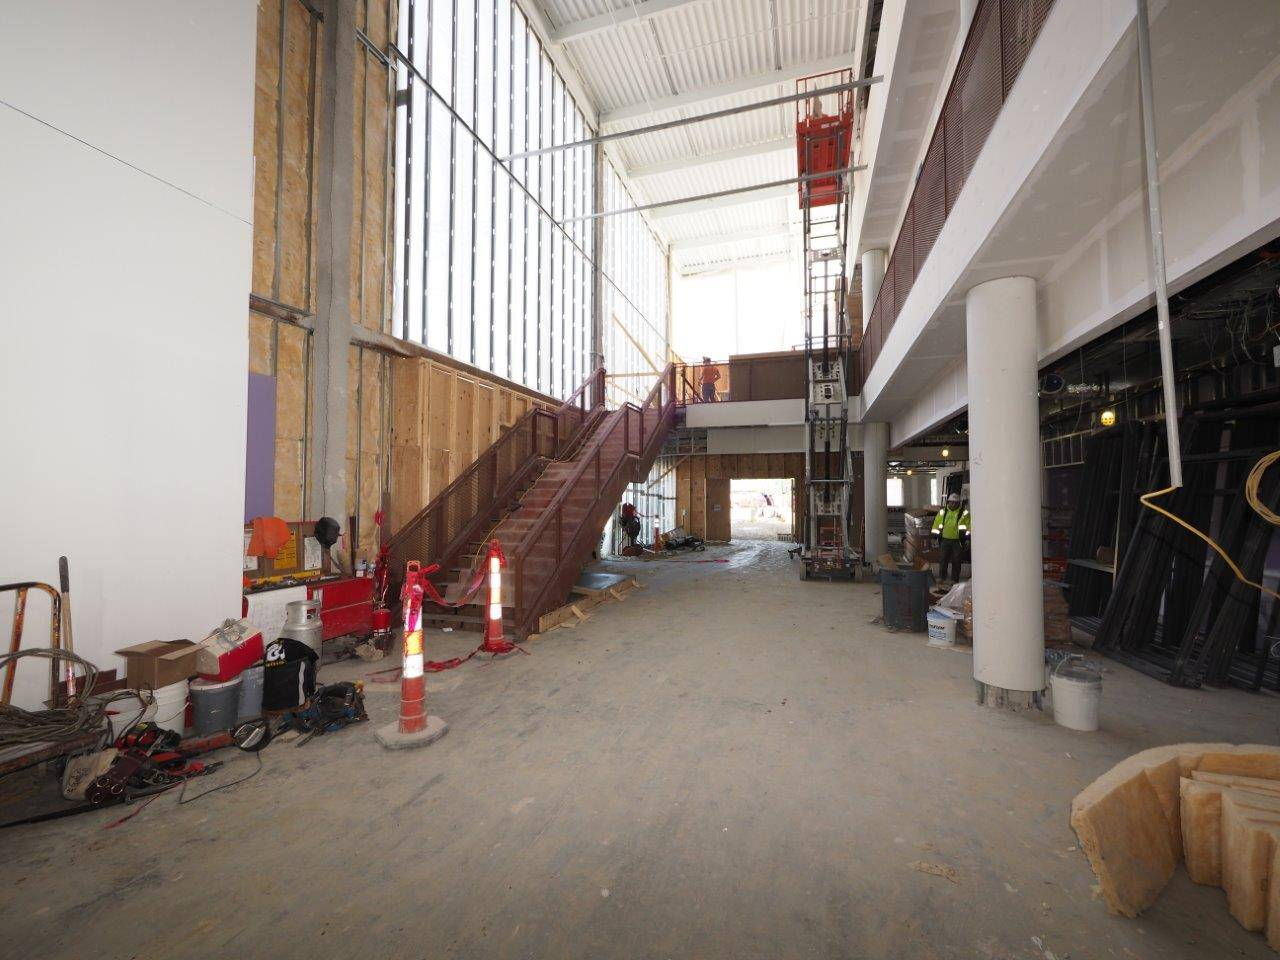 Looking at the main entrance to the new high school